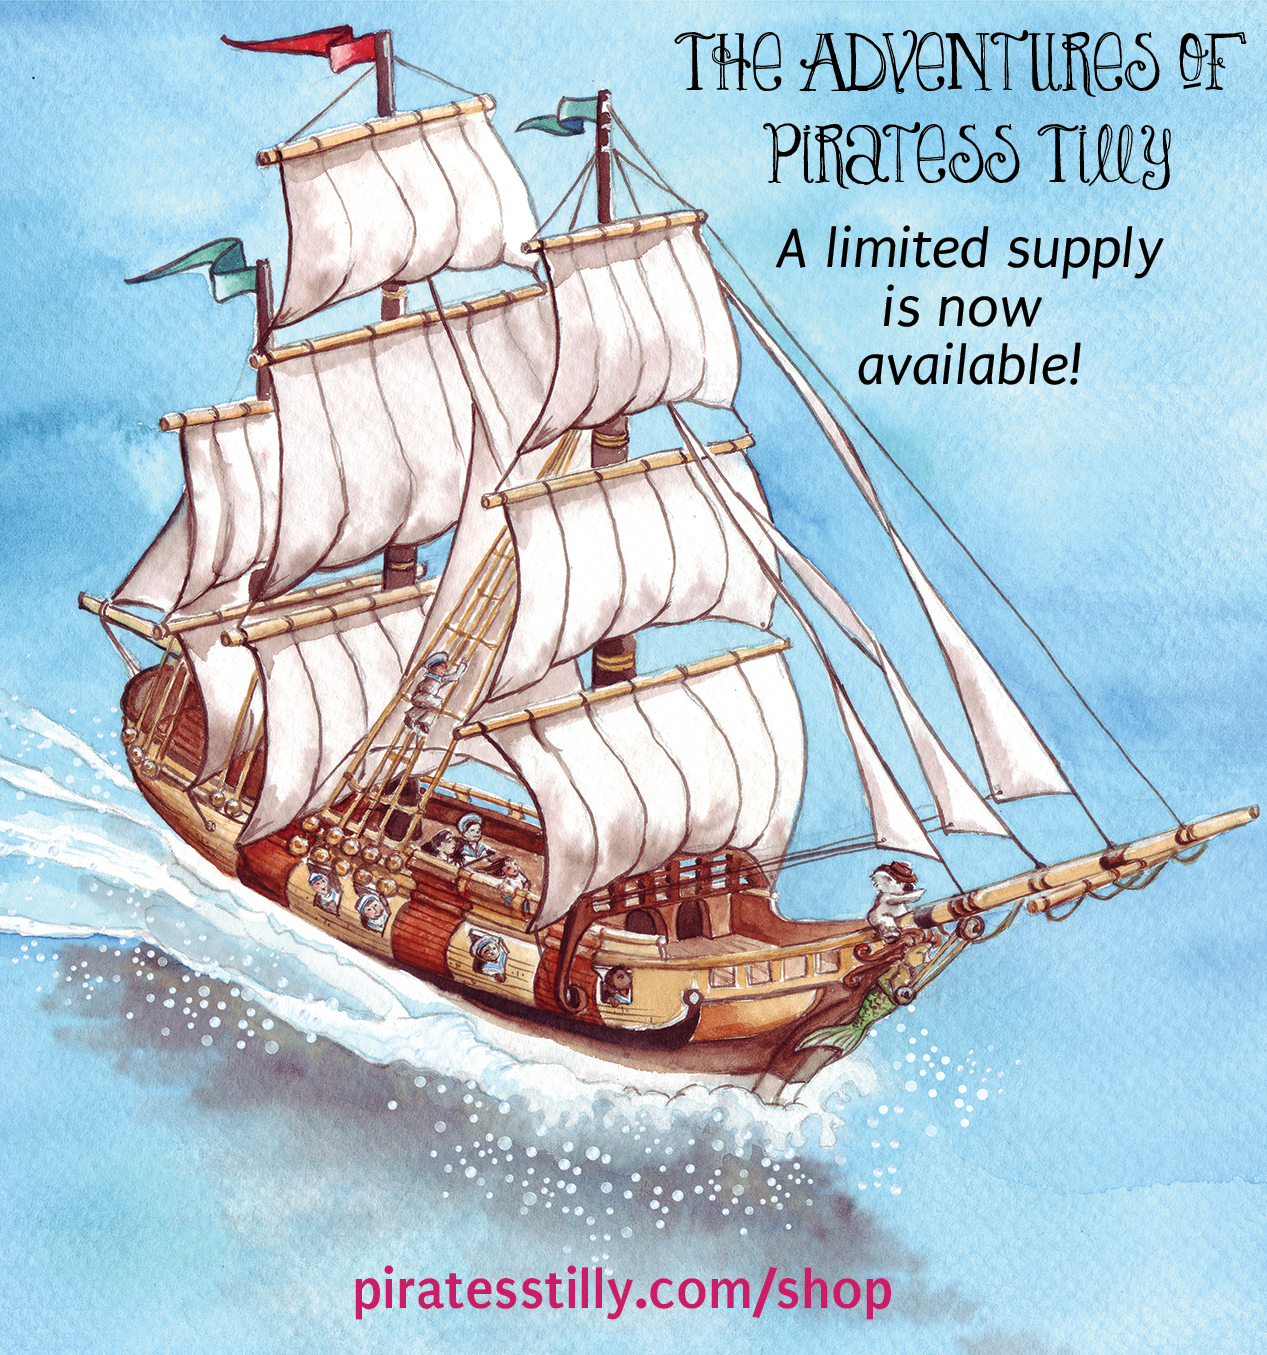 The Adventures of Piratess Tilly, children's picture book for sale